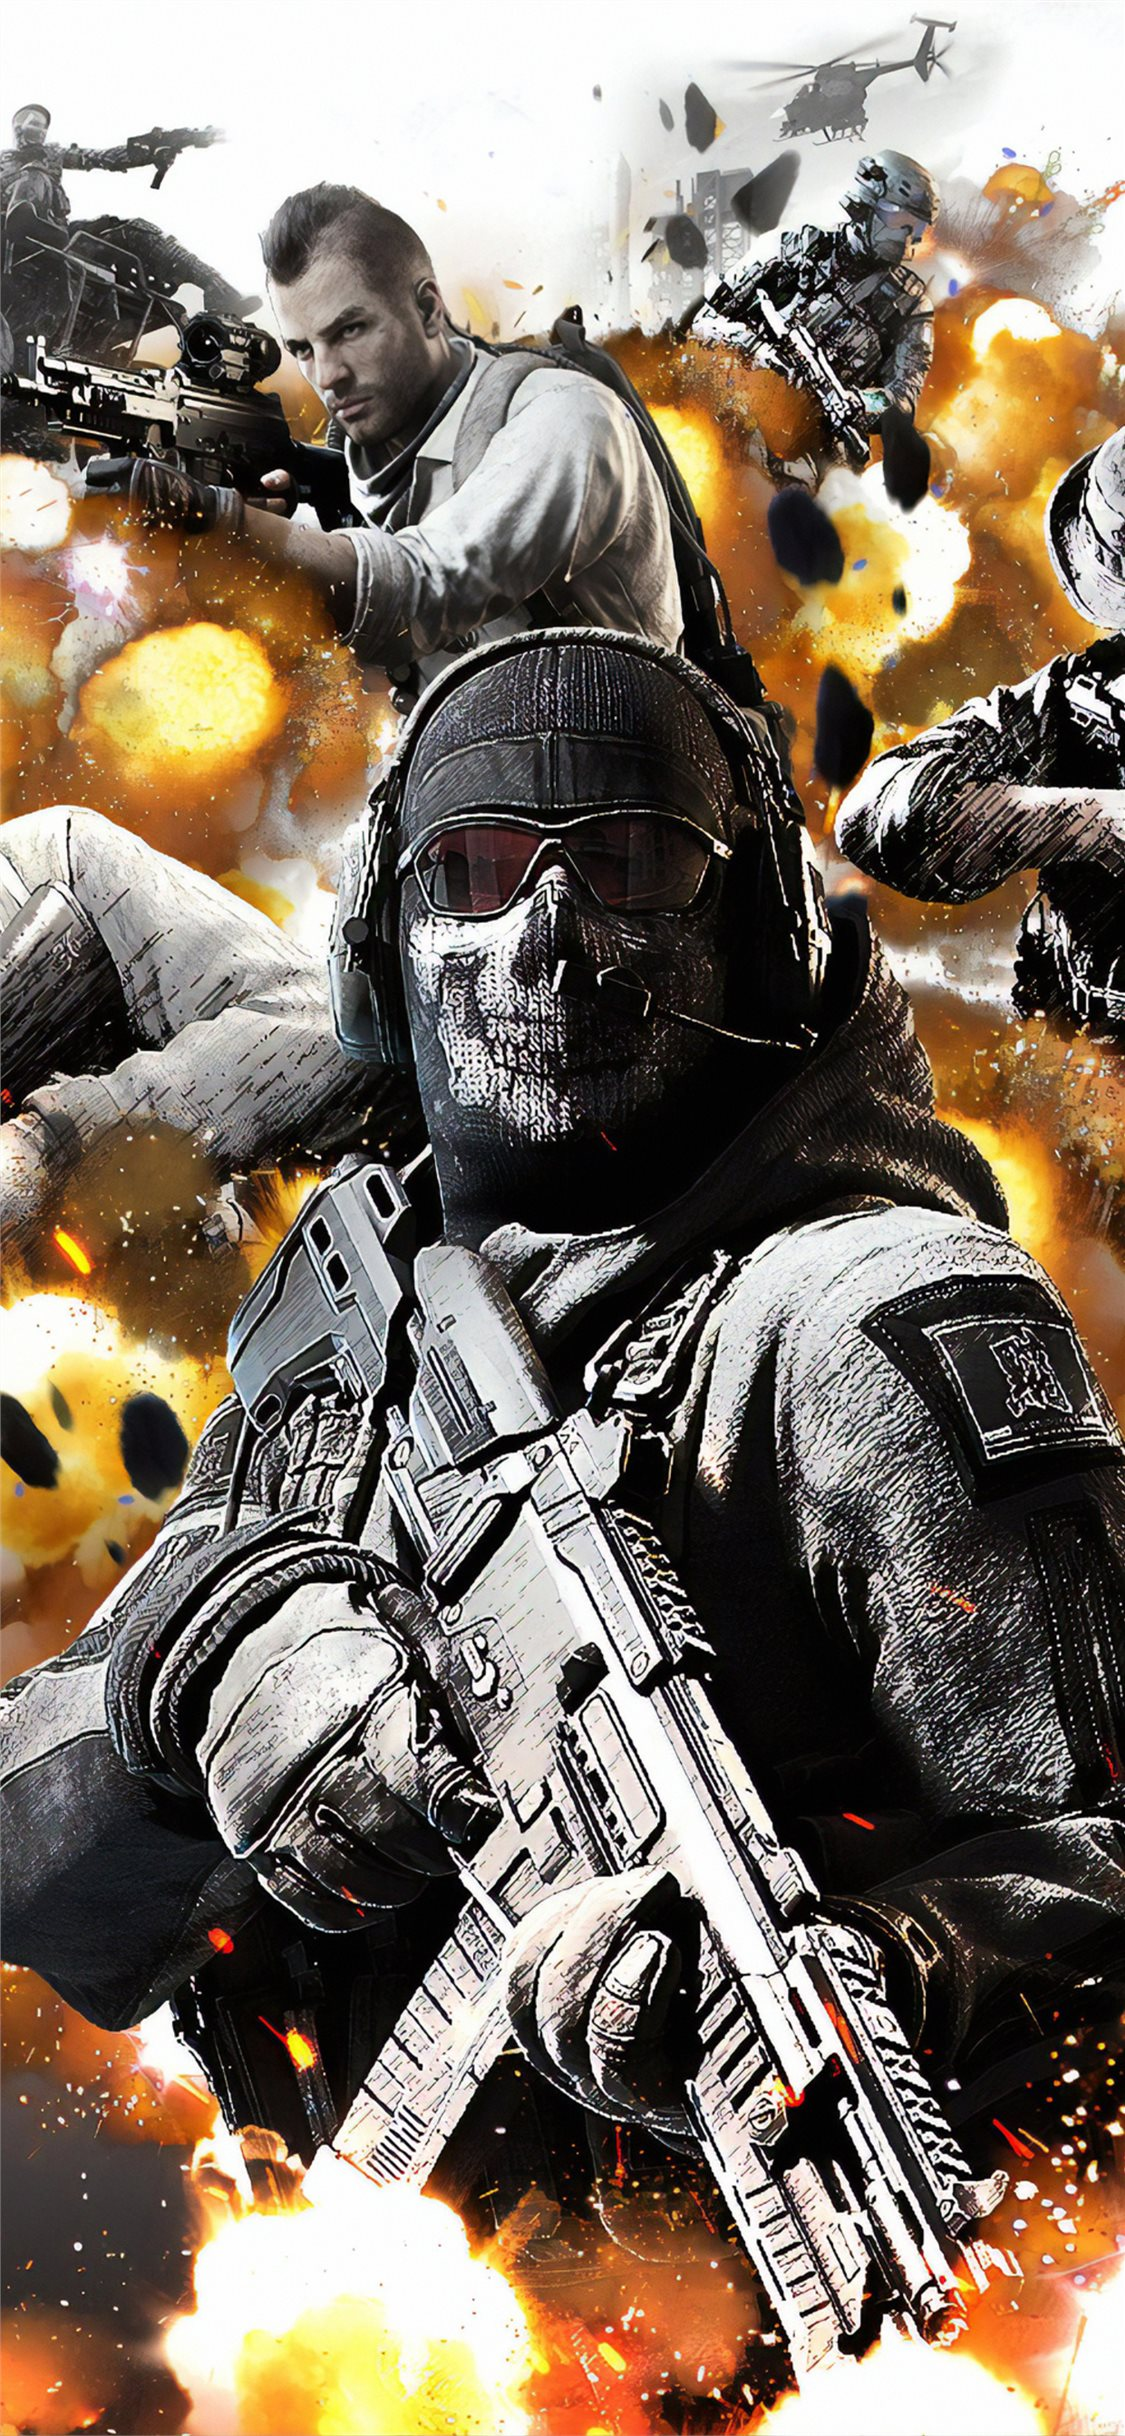 Call Of Duty Mobile Wallpaper 4k Android - HD Wallpaper